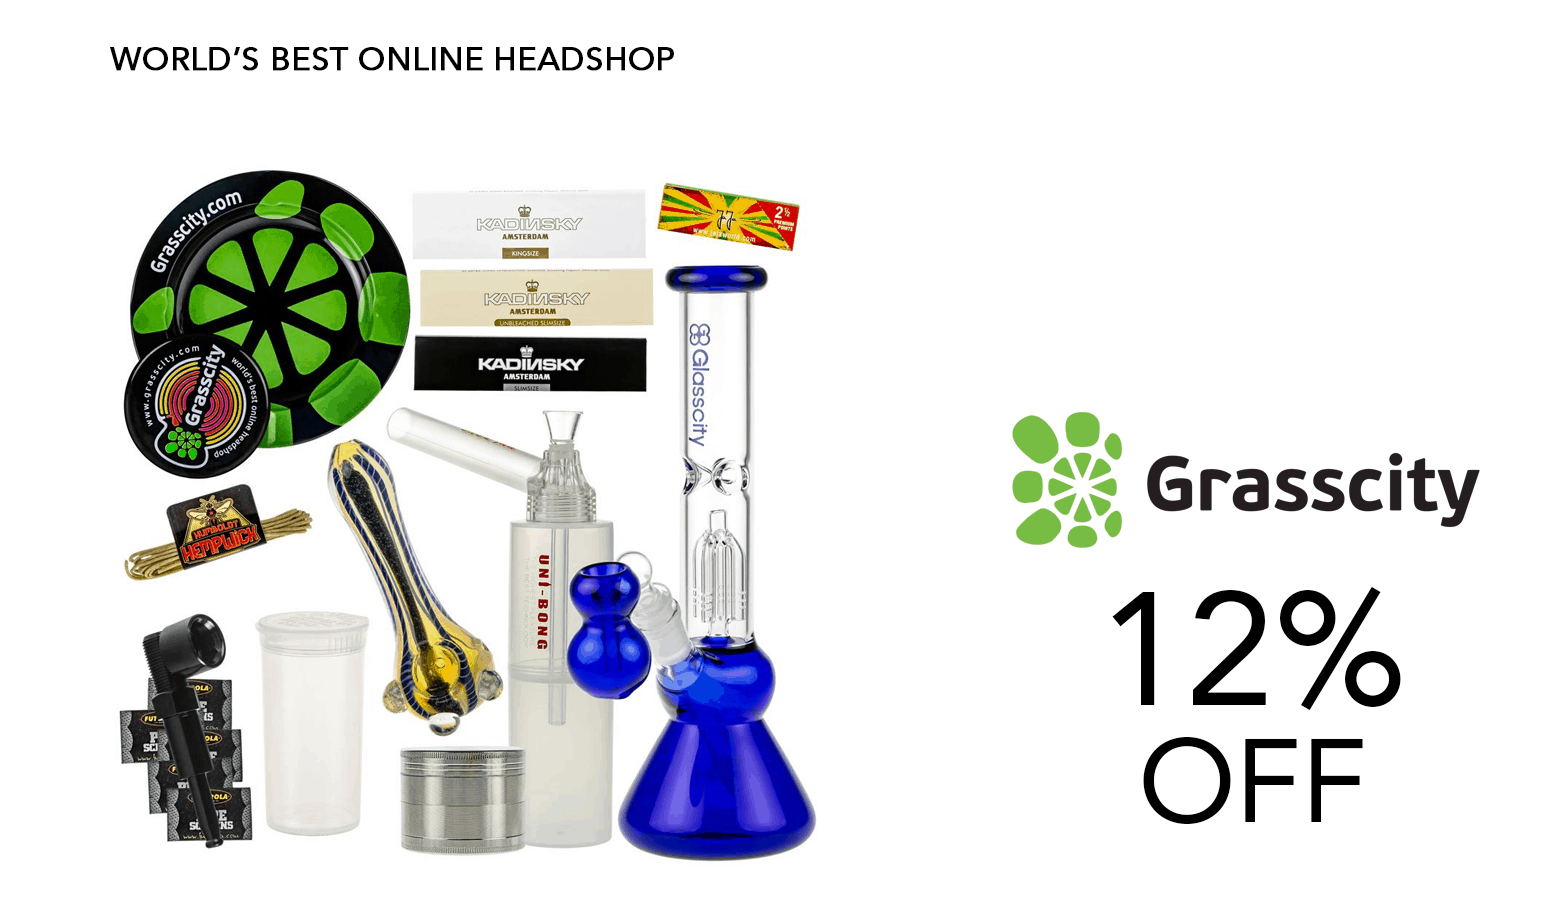 Grasscity.com Online Head Shop Coupons Offer Website